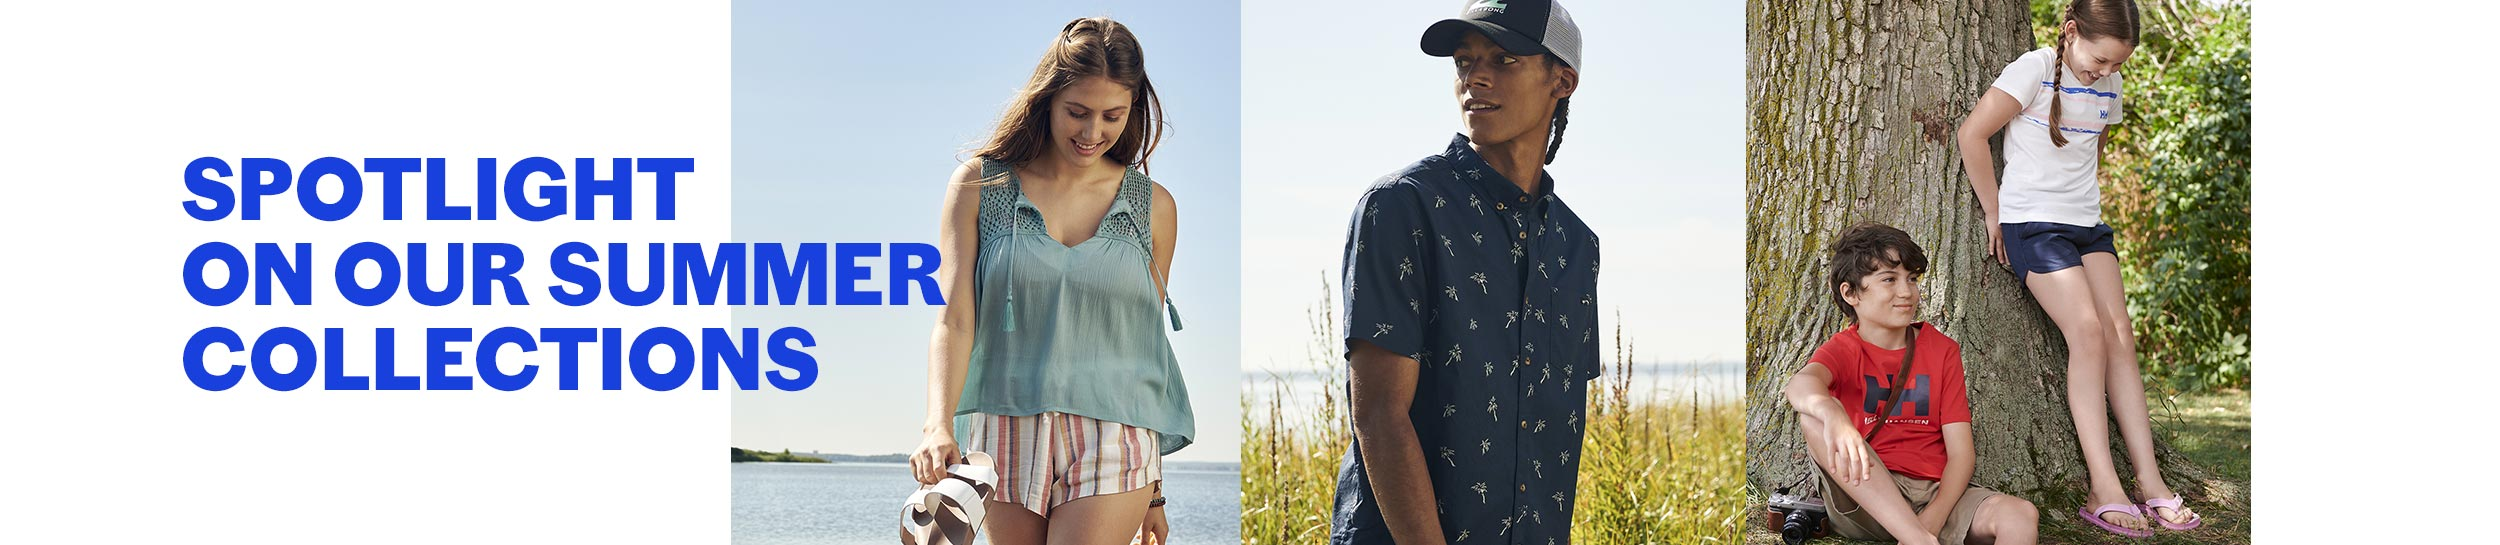 Spotlight on our summer collection